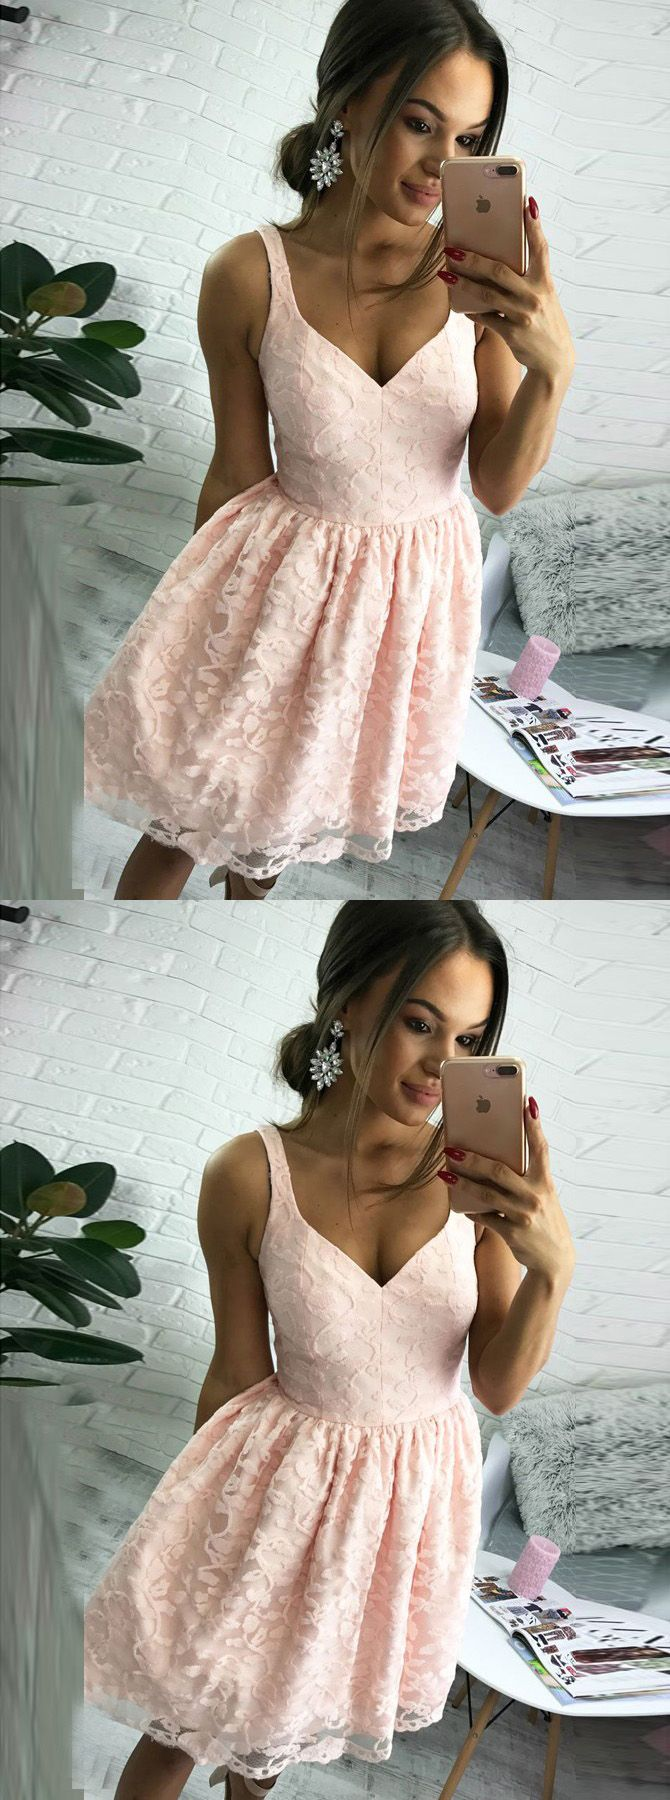 homecoming dresses,short homecoming dresses,cheap homecoming dresses,lace homecoming dresses,pink homecoming dresses